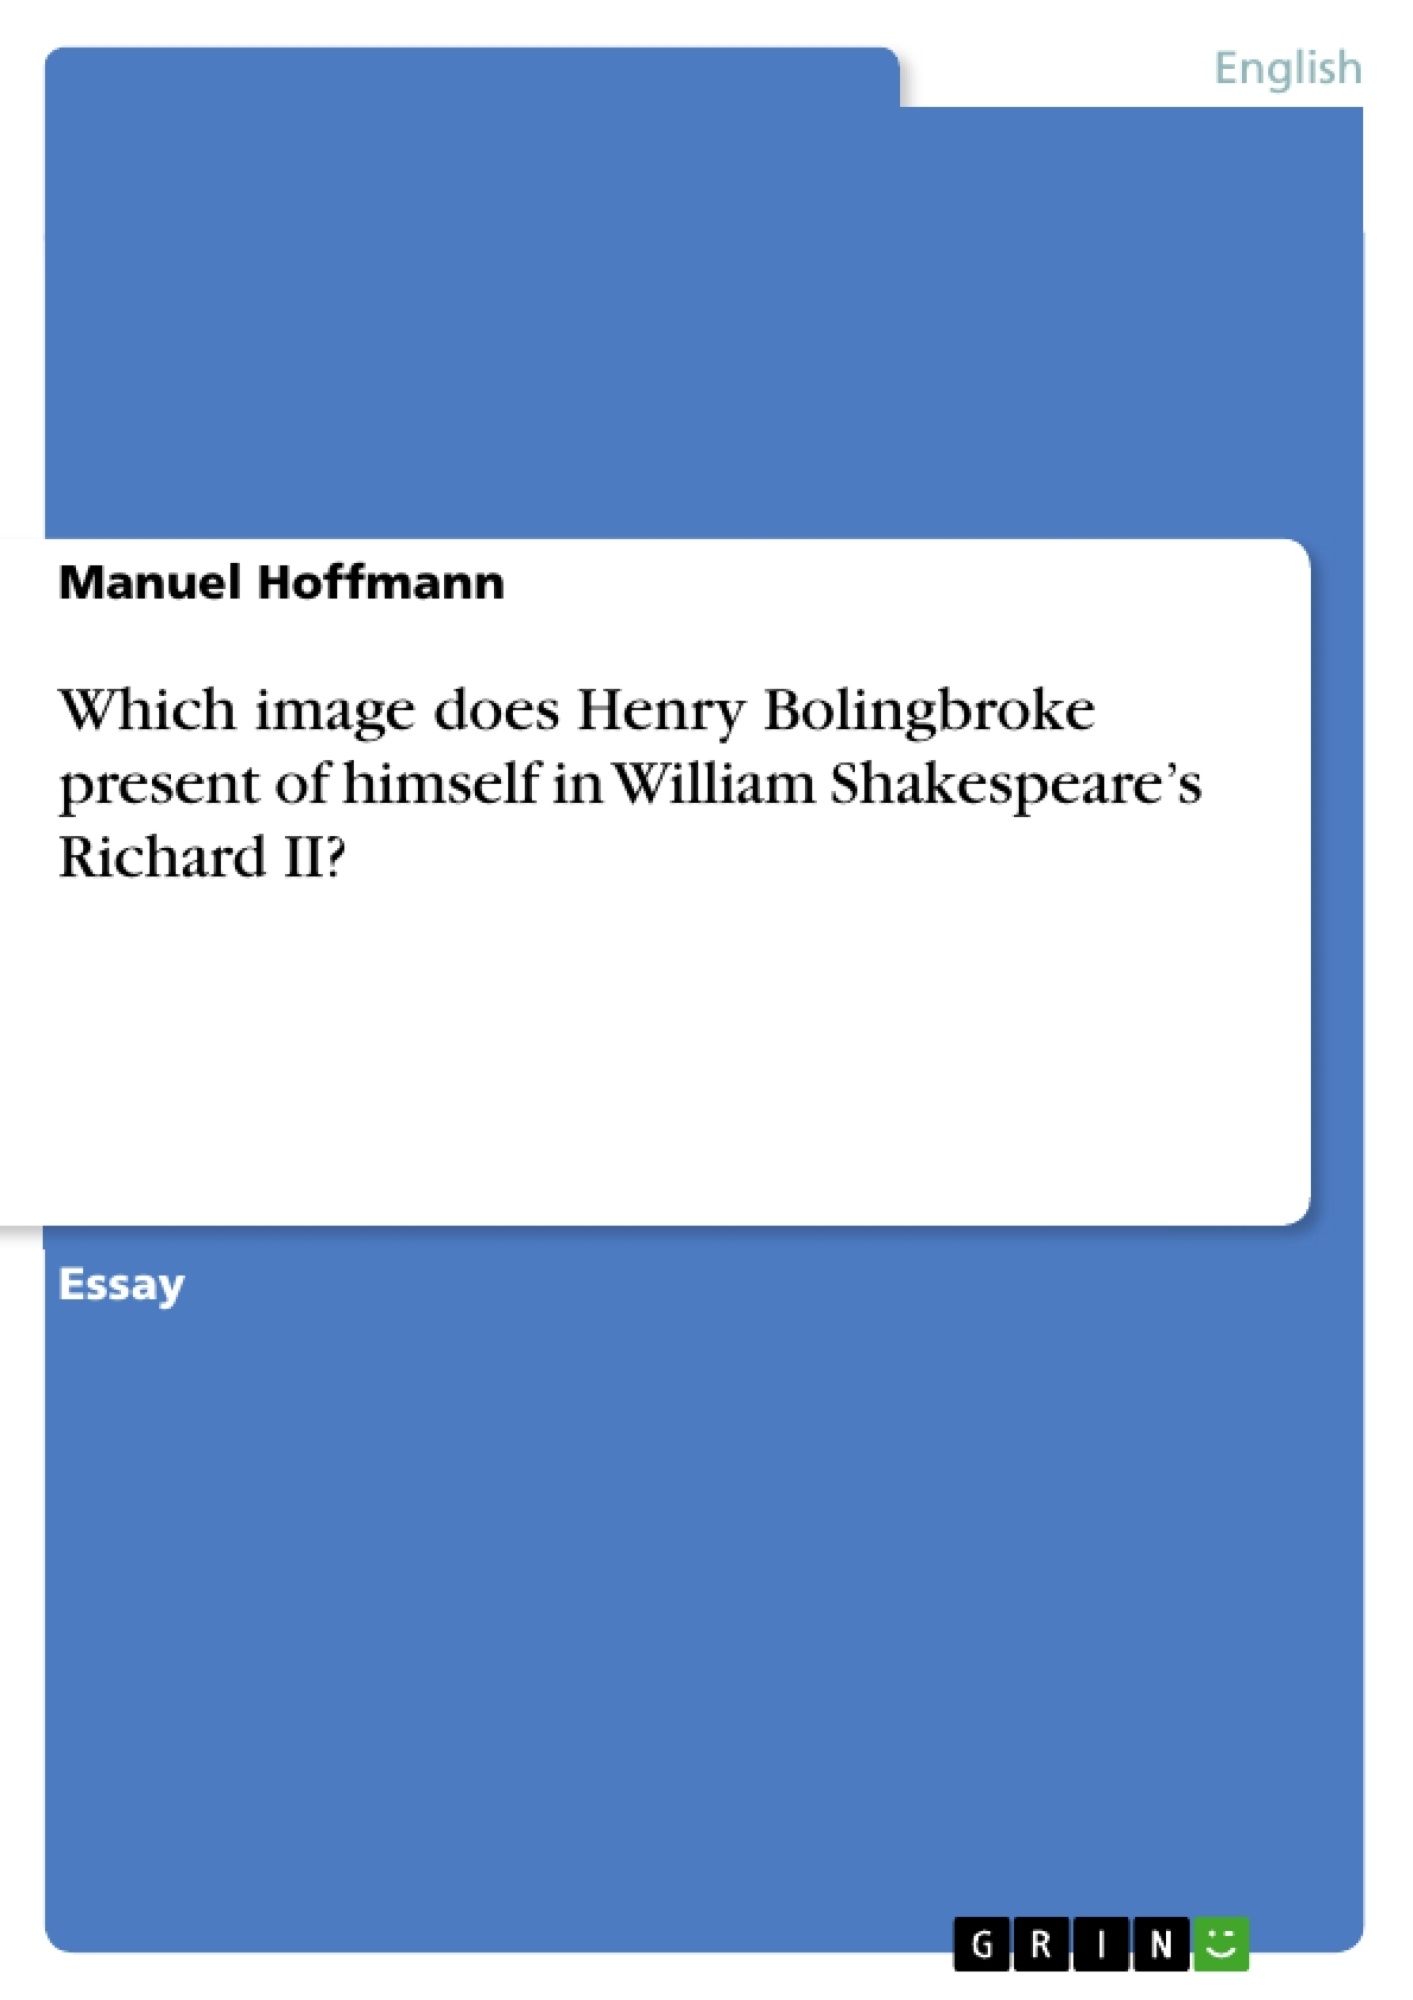 Title: Which image does Henry Bolingbroke present of himself in William Shakespeare's Richard II?